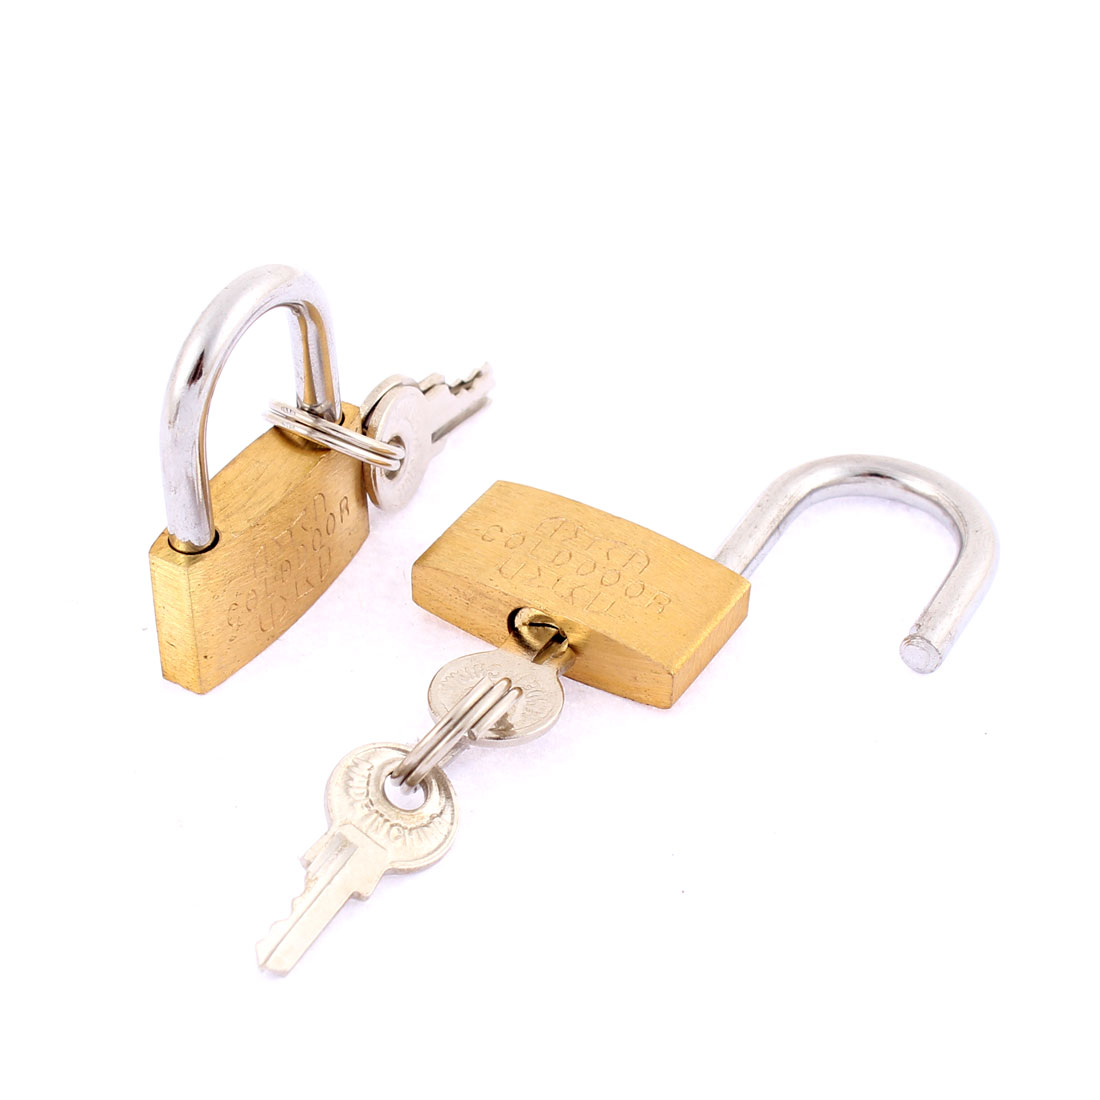 School Office Desk Travel Suitcase Safety Lock Padlock Bronze Tone 2pcs